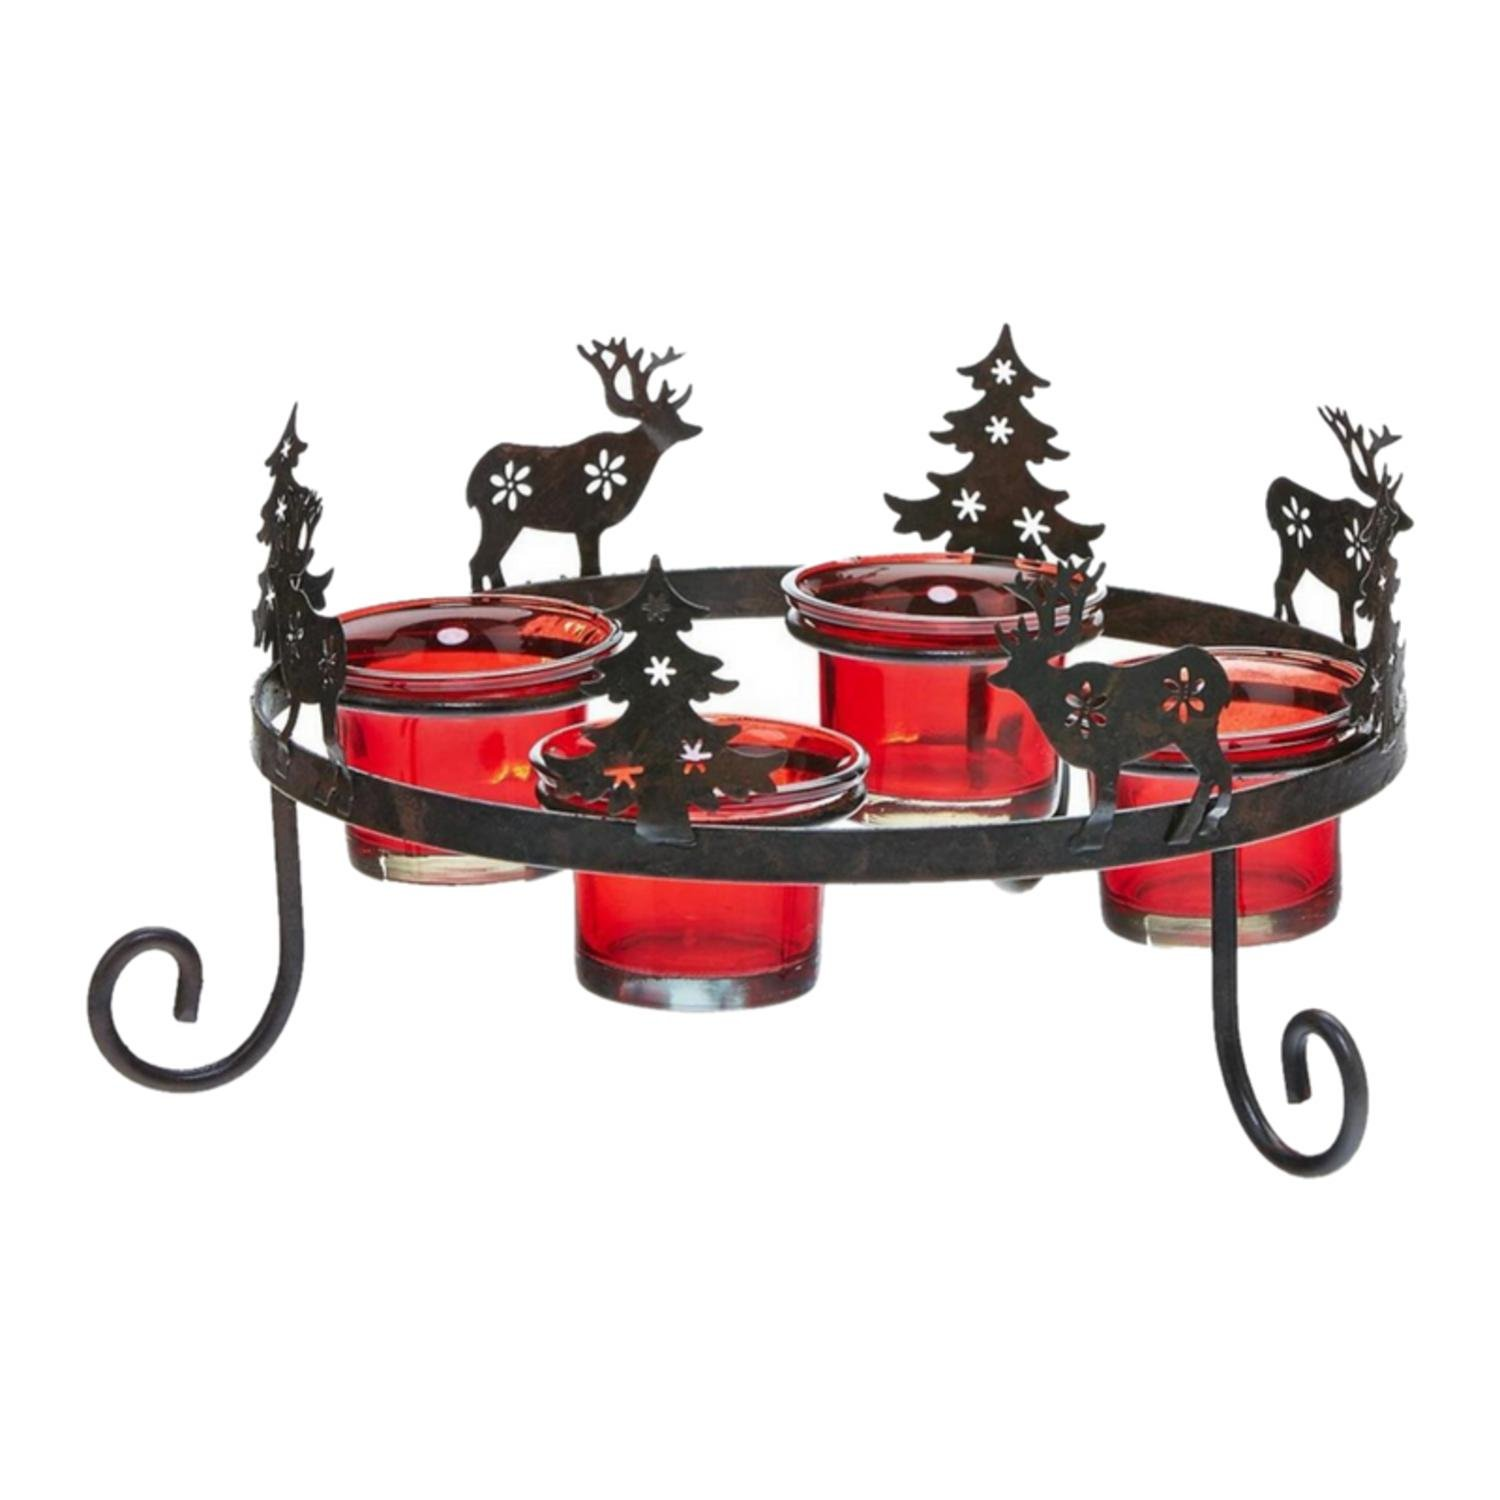 CC Home Furnishings Pack of 2 Red and Bronze Glass Woodland Silhouette Christmas Multi-Tea Light Candle Holders 3.5''